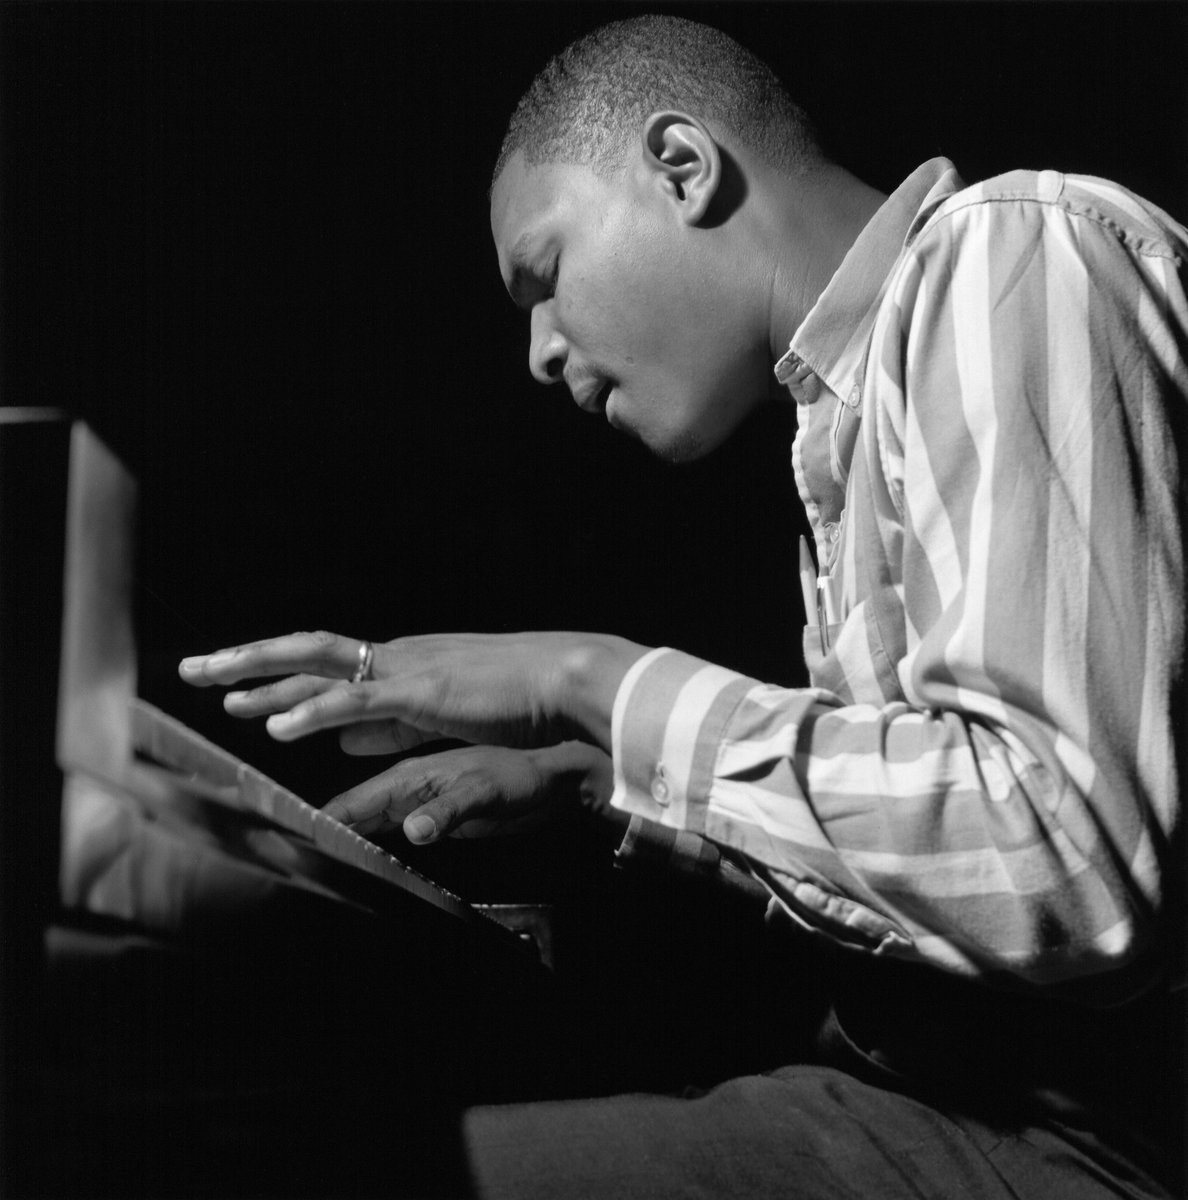 Happy 80th Birthday to the great #McCoyTyner! https://t.co/ZEJ2yQZjMq